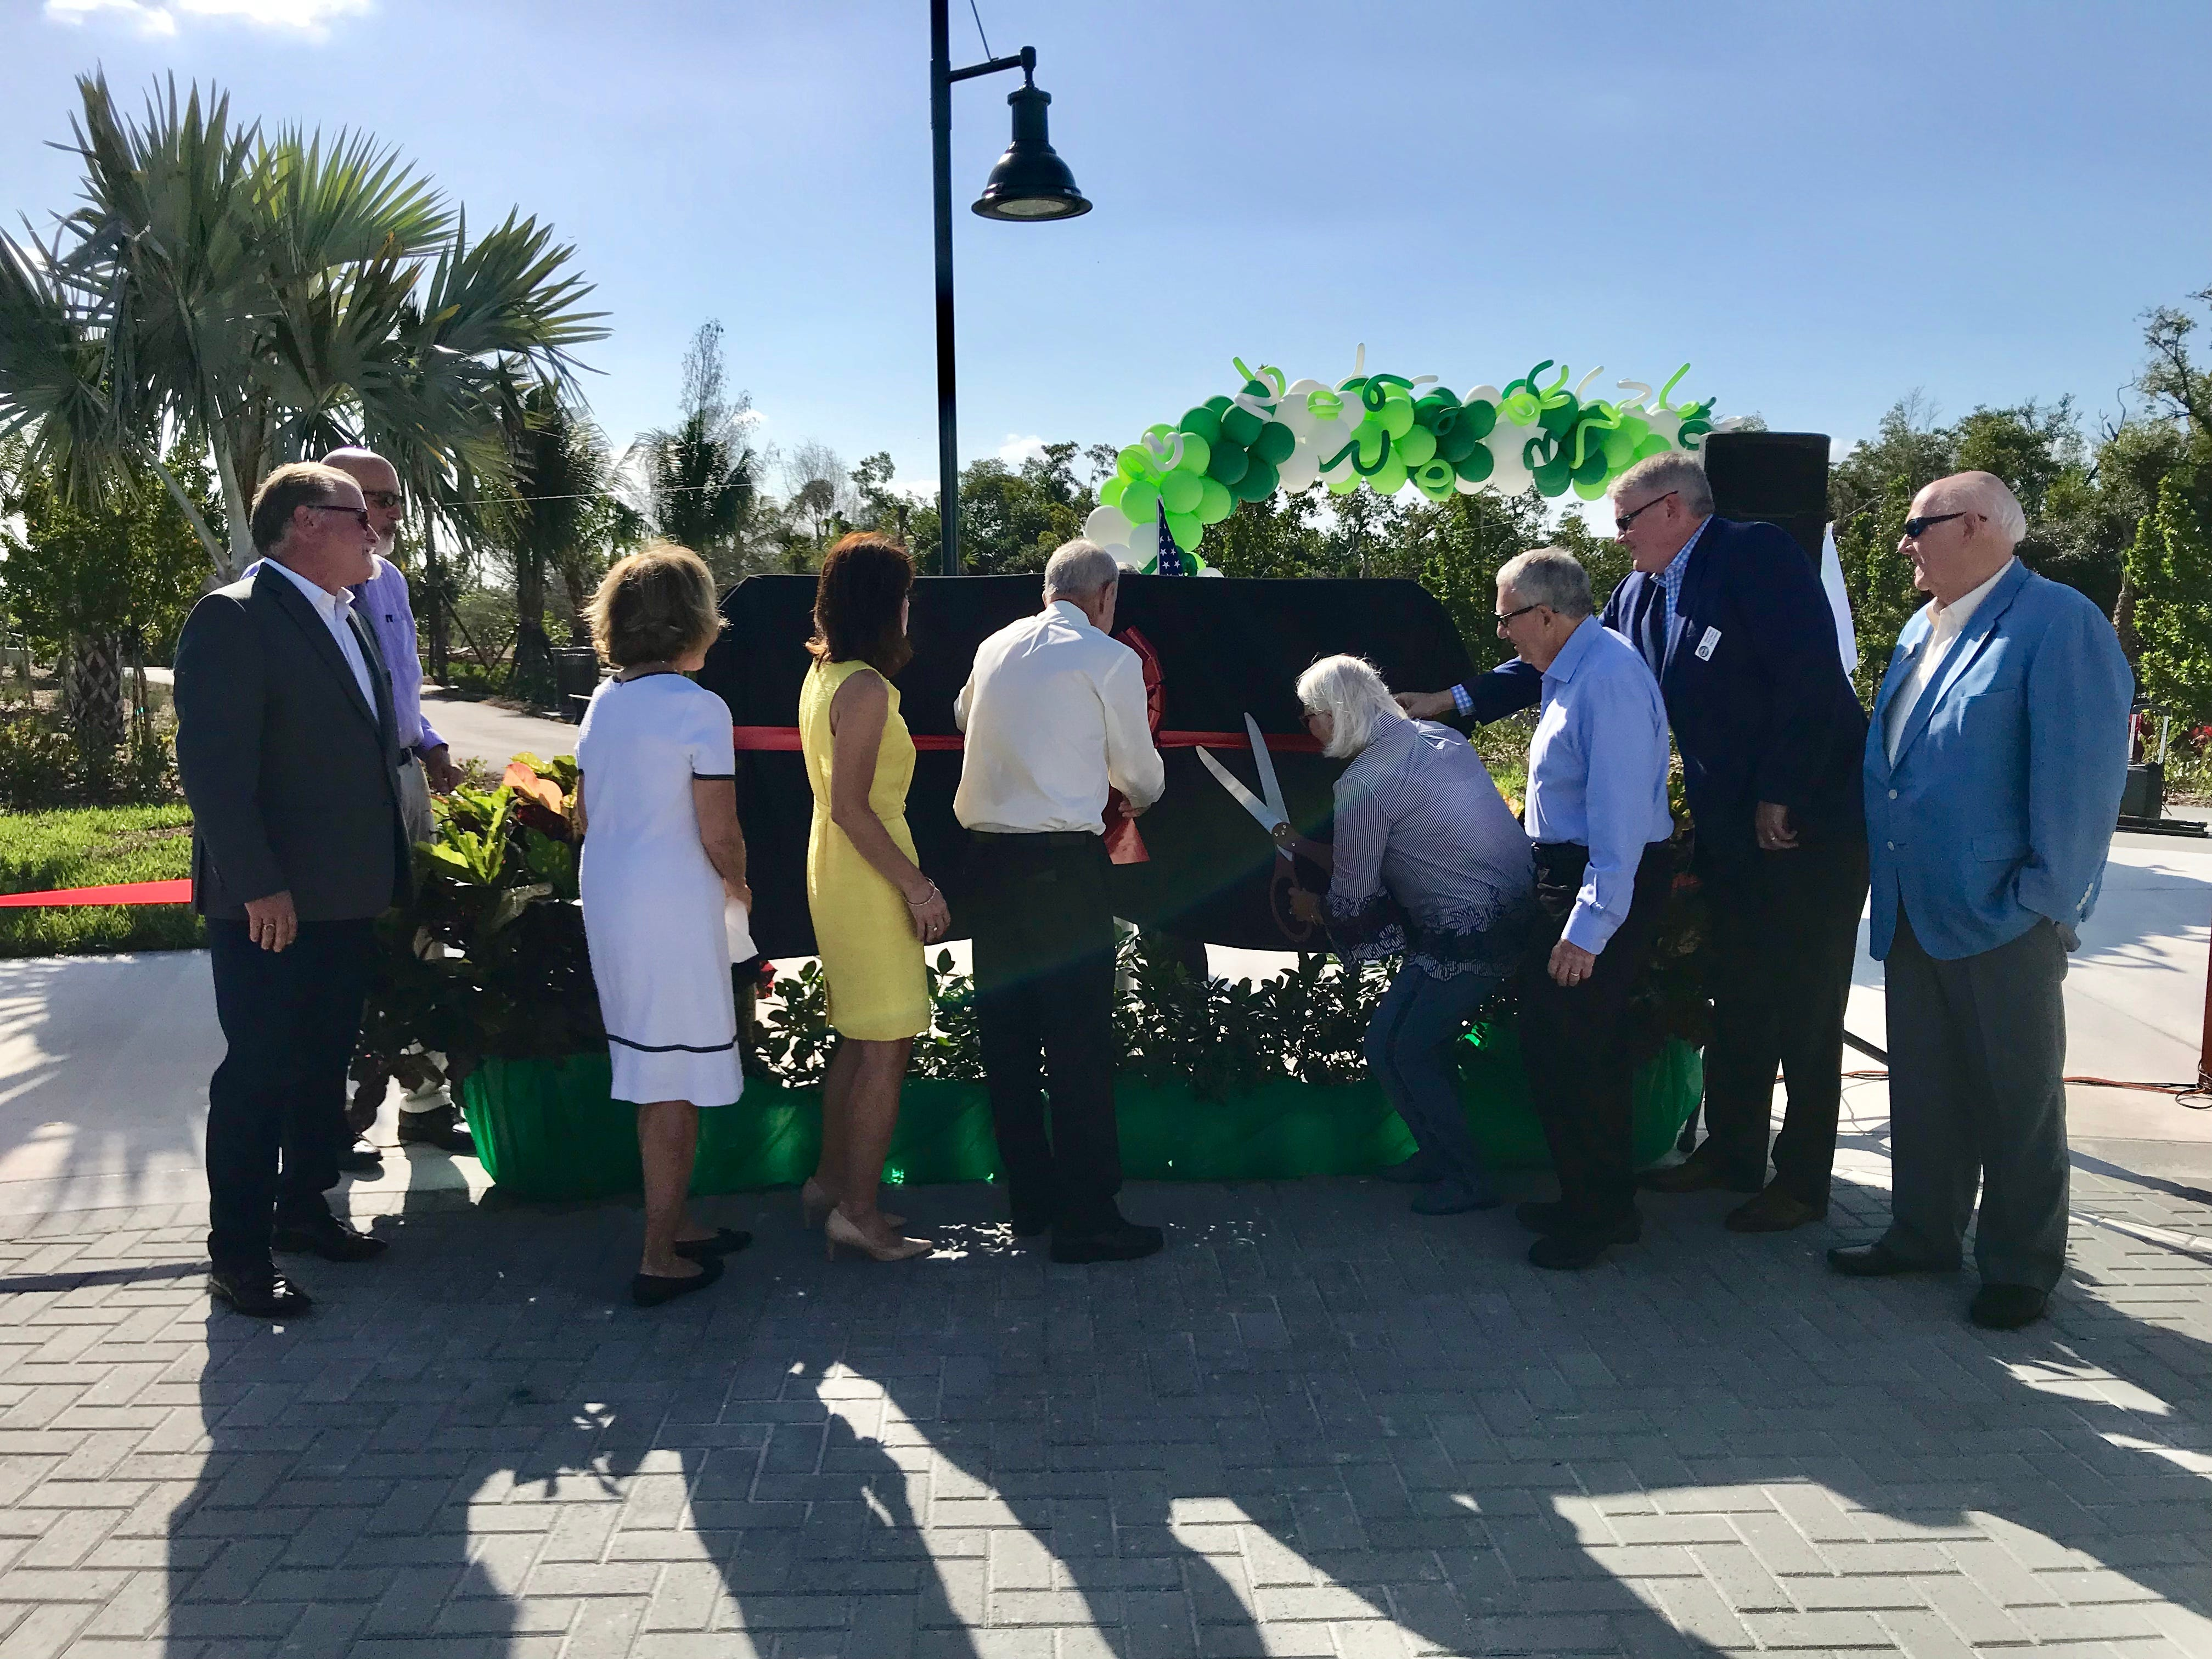 Patty Baker, right, cuts the ribbon on the Baker Park sign during the dedication ceremony on March 14, 2019. The first portion of Baker Park opened on March 14. The rest of the park is set to open in October.